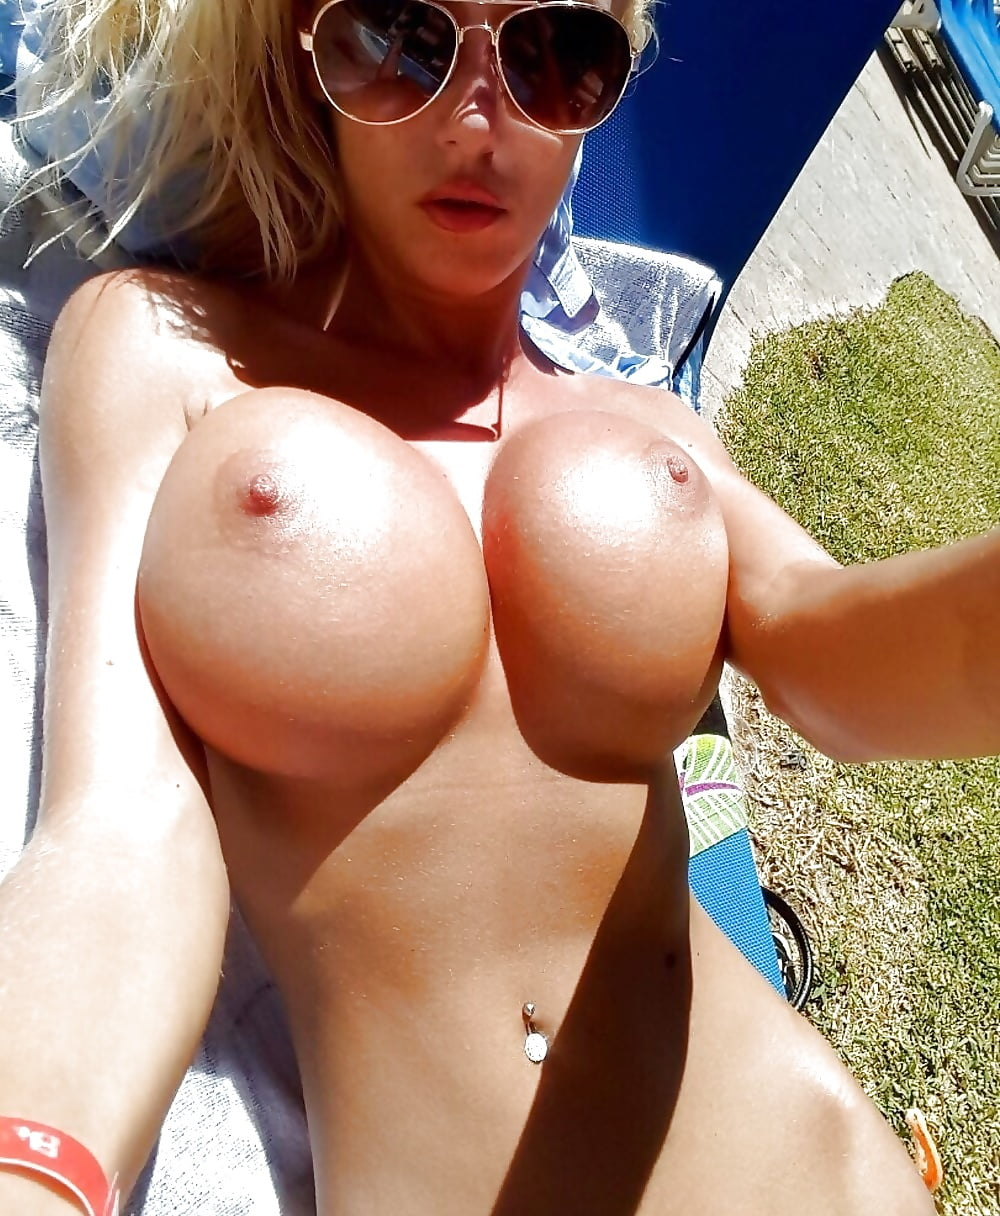 hot-young-topless-blonde-fake-boobs-a-older-men-fucking-hard-a-younger-women